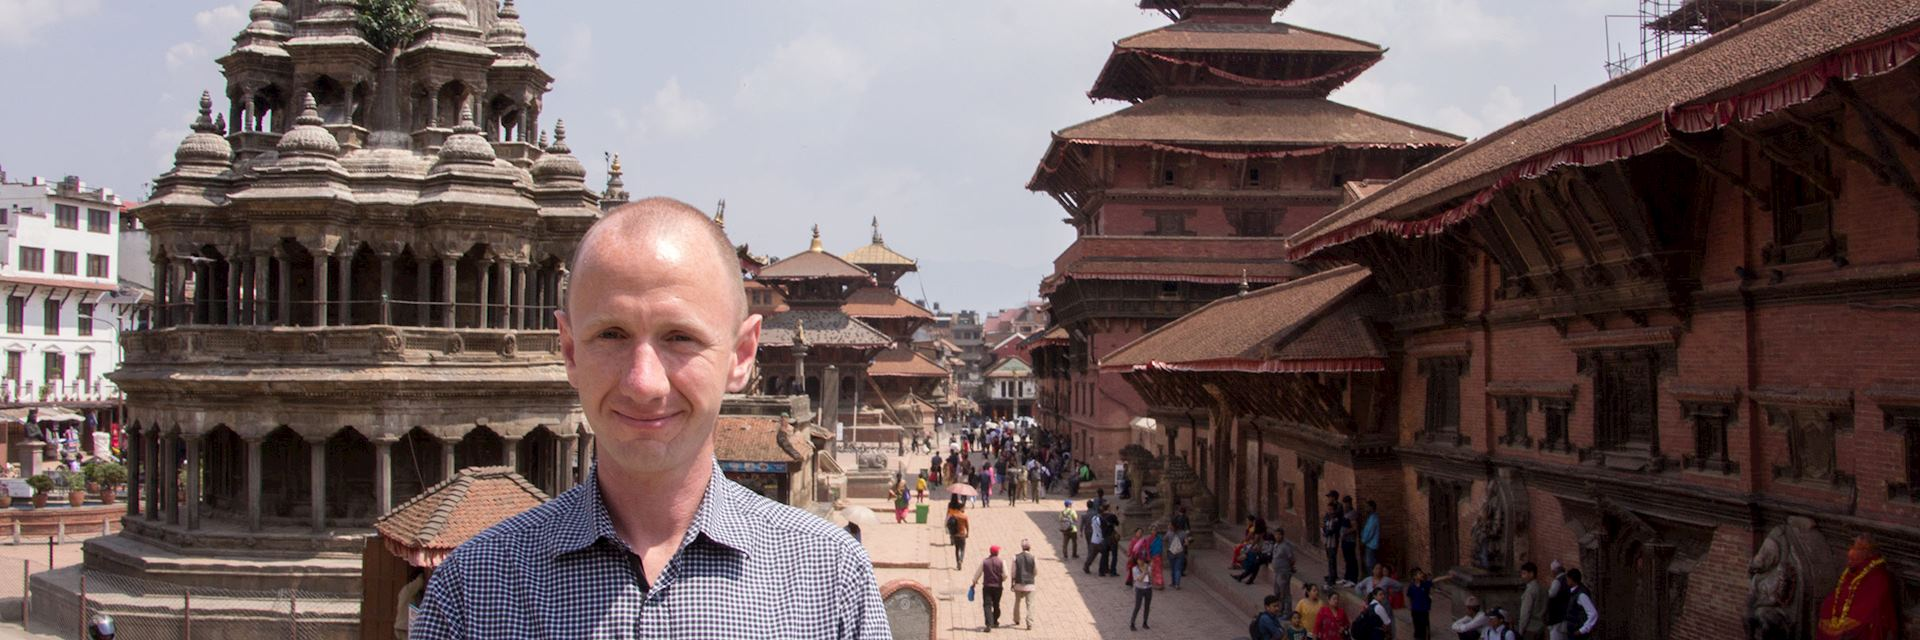 Nick in Patan's Durbar Square, Nepal